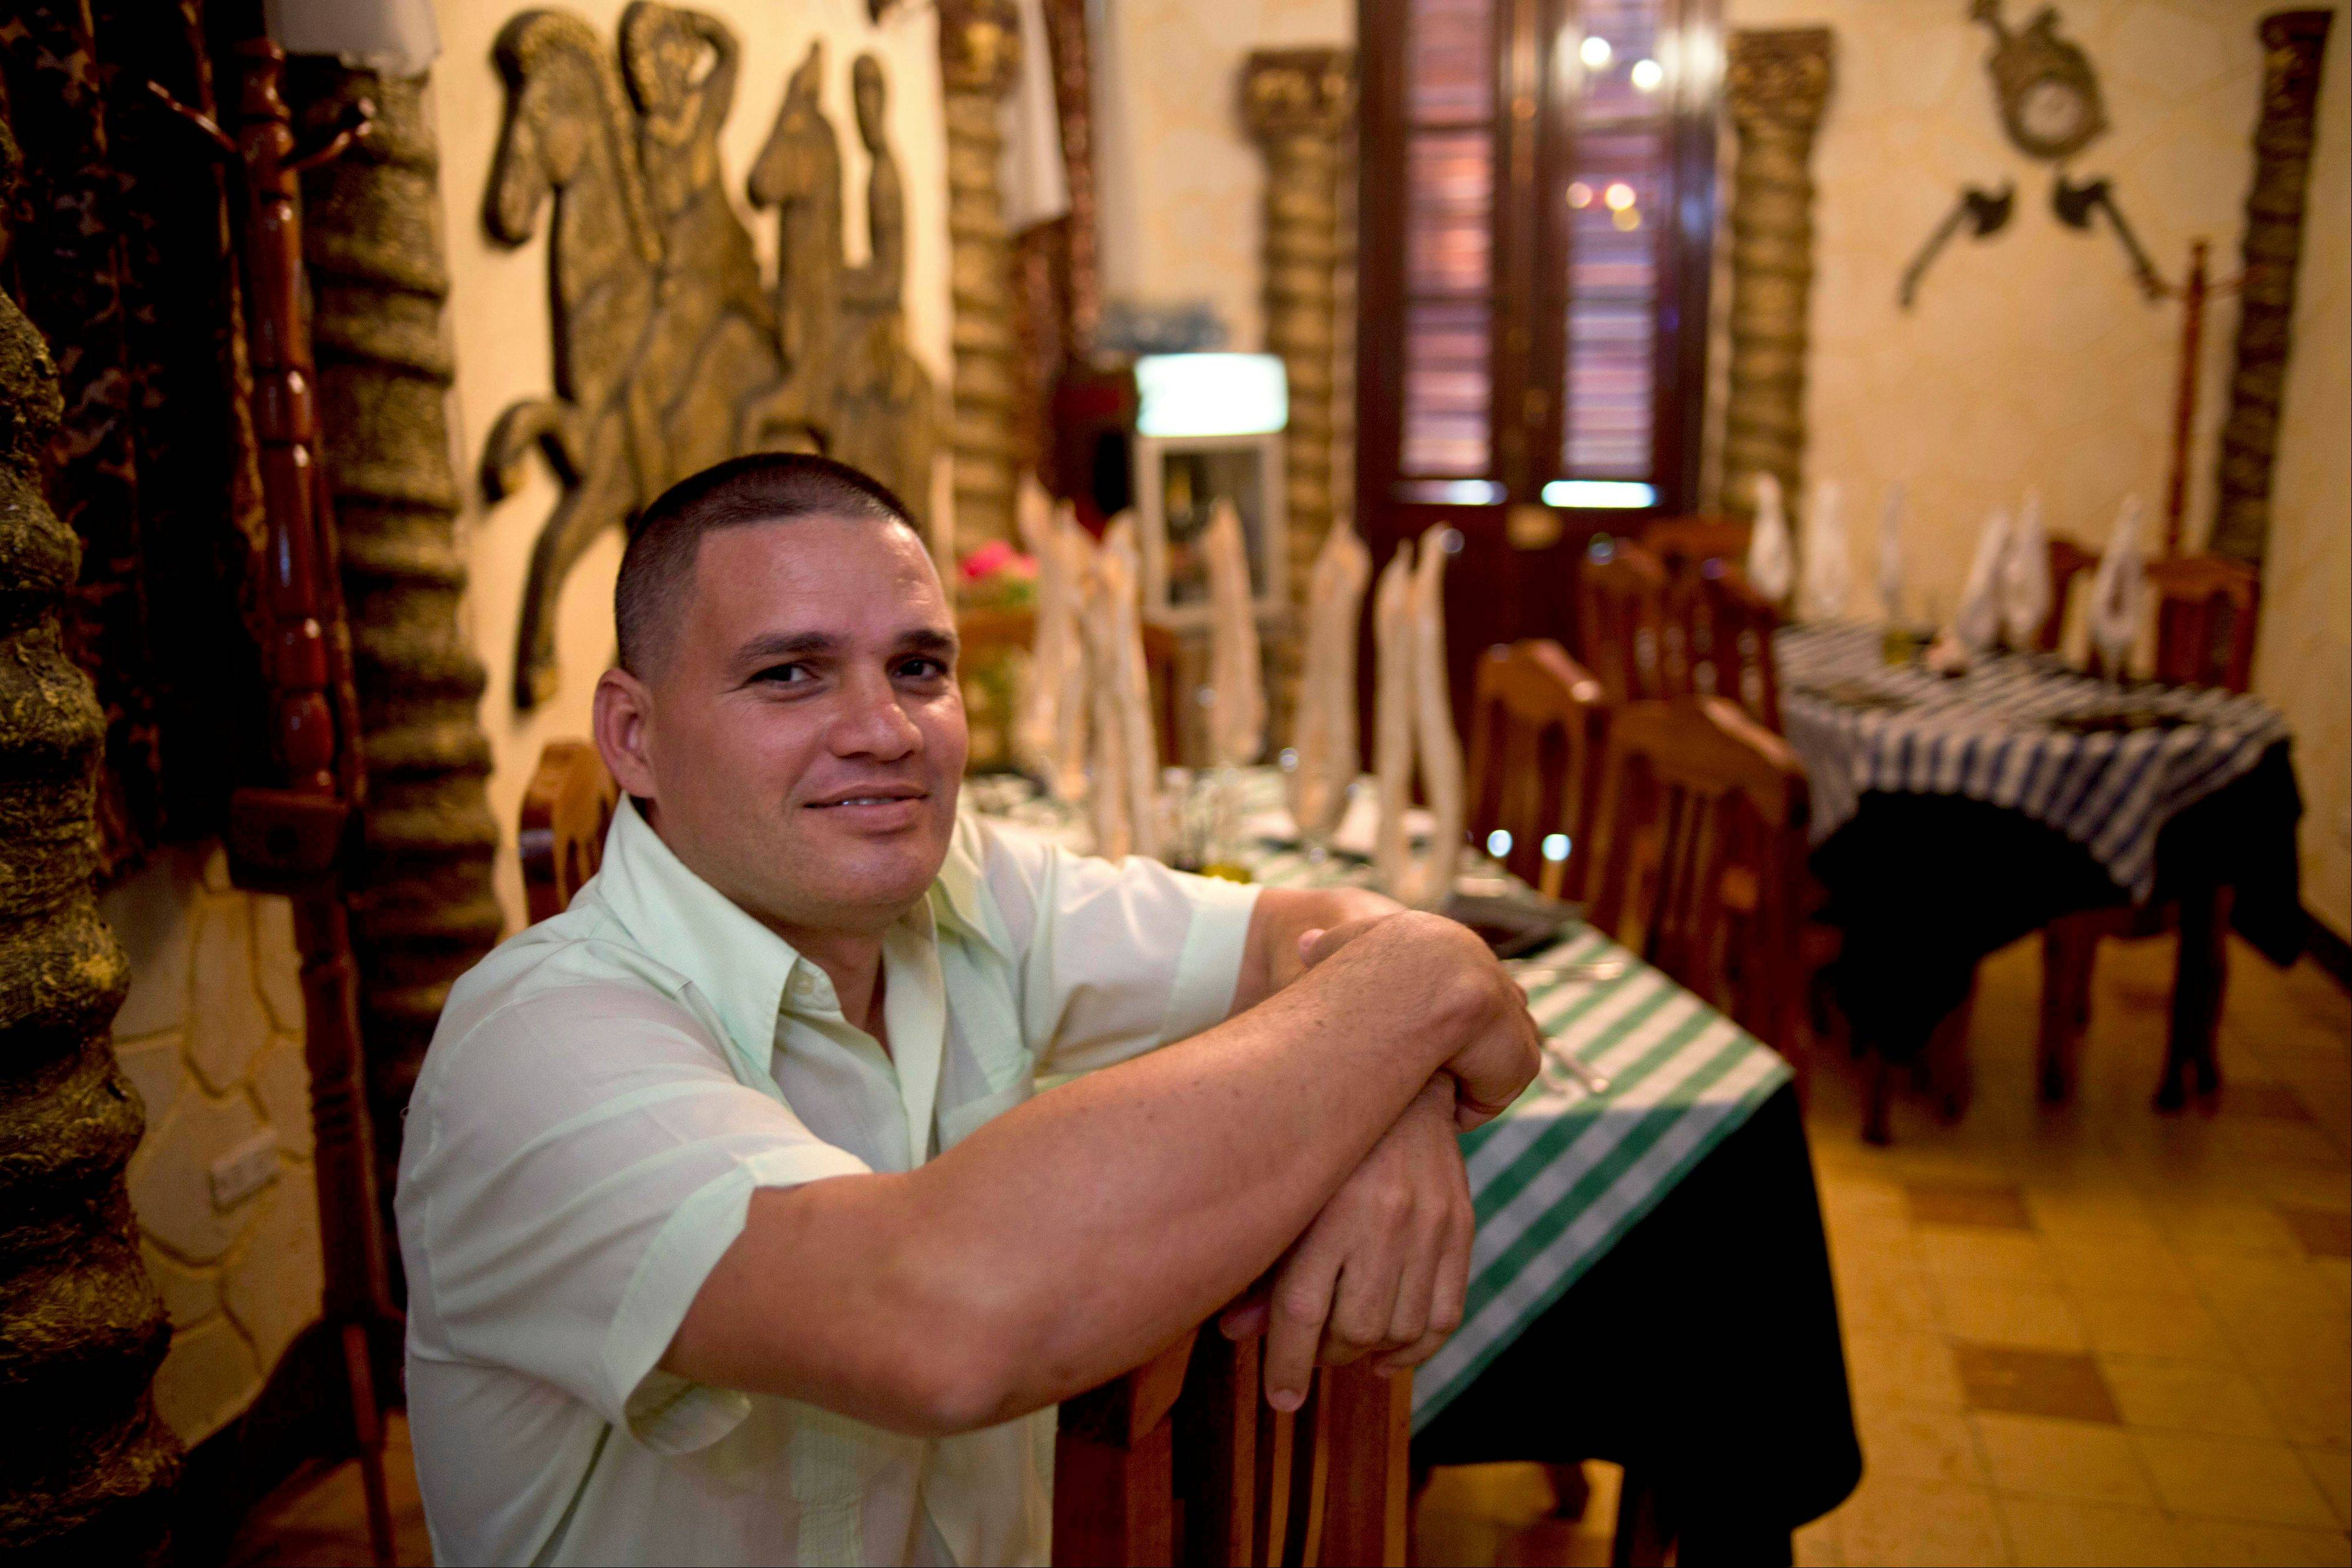 Javier Acosta, chef and owner of Parthenon restaurant, in his restaurant in Havana, Cuba.